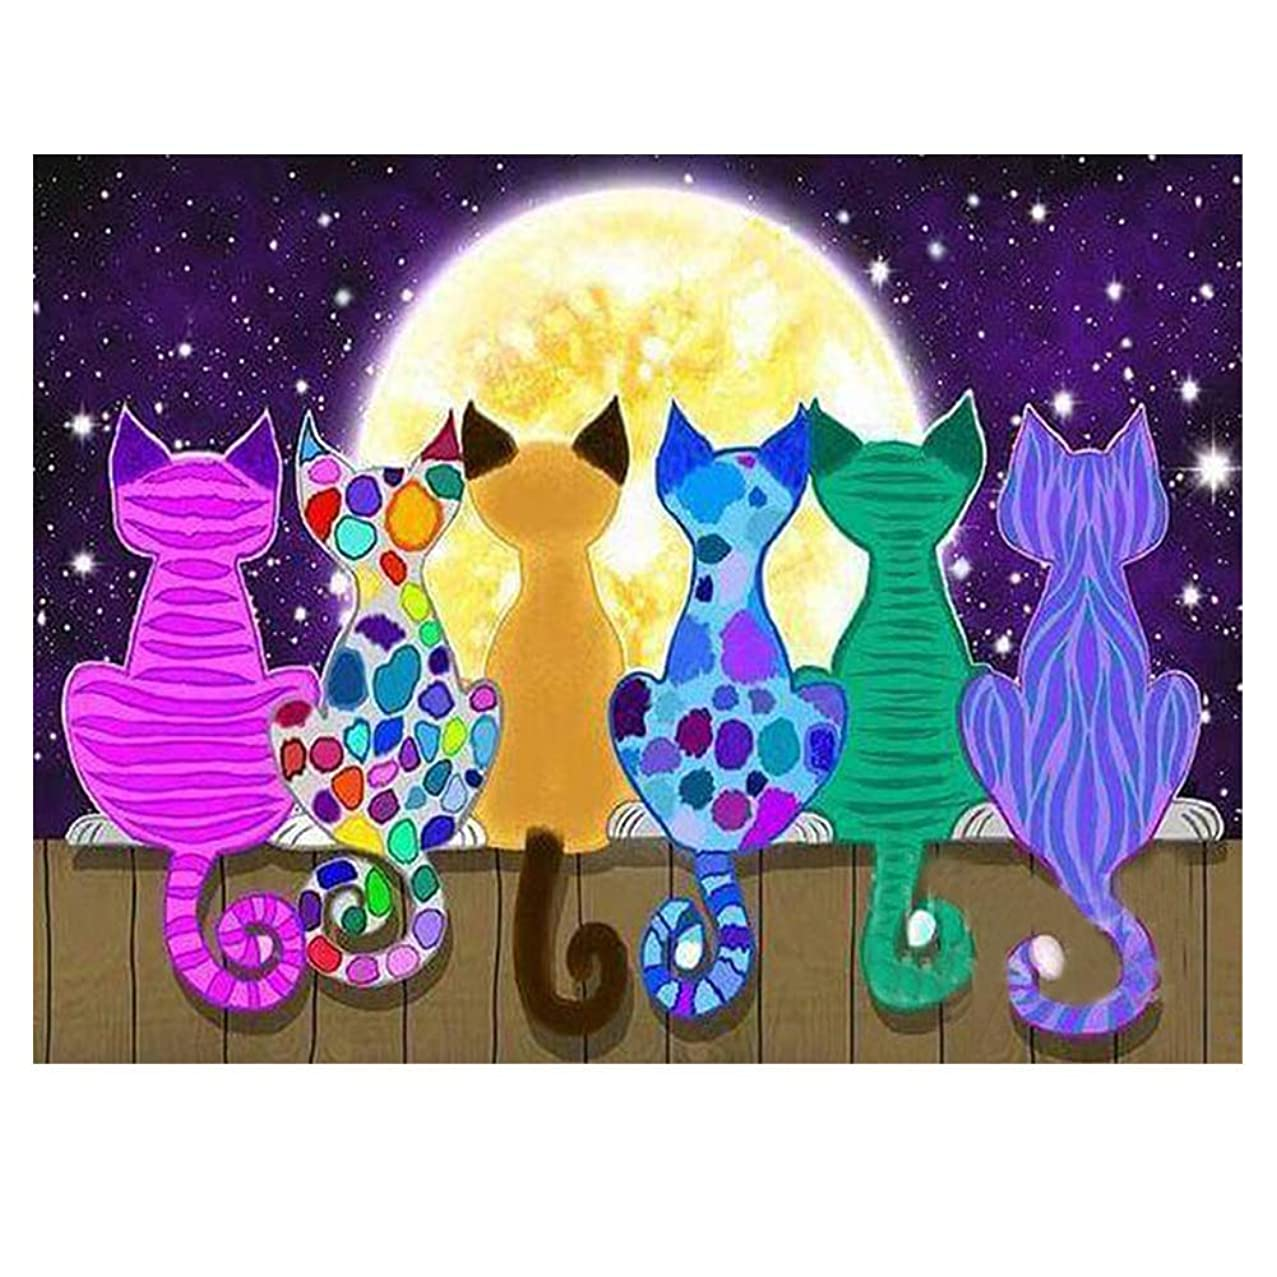 DIY 5D Diamond Painting Kit for Adults Children, NYEBS DIY Painting with Diamonds Animal Full Round Drill Moon Cats Rhinestone Embroidery Arts Craft Supply for Wall Decoration 12X16 inches